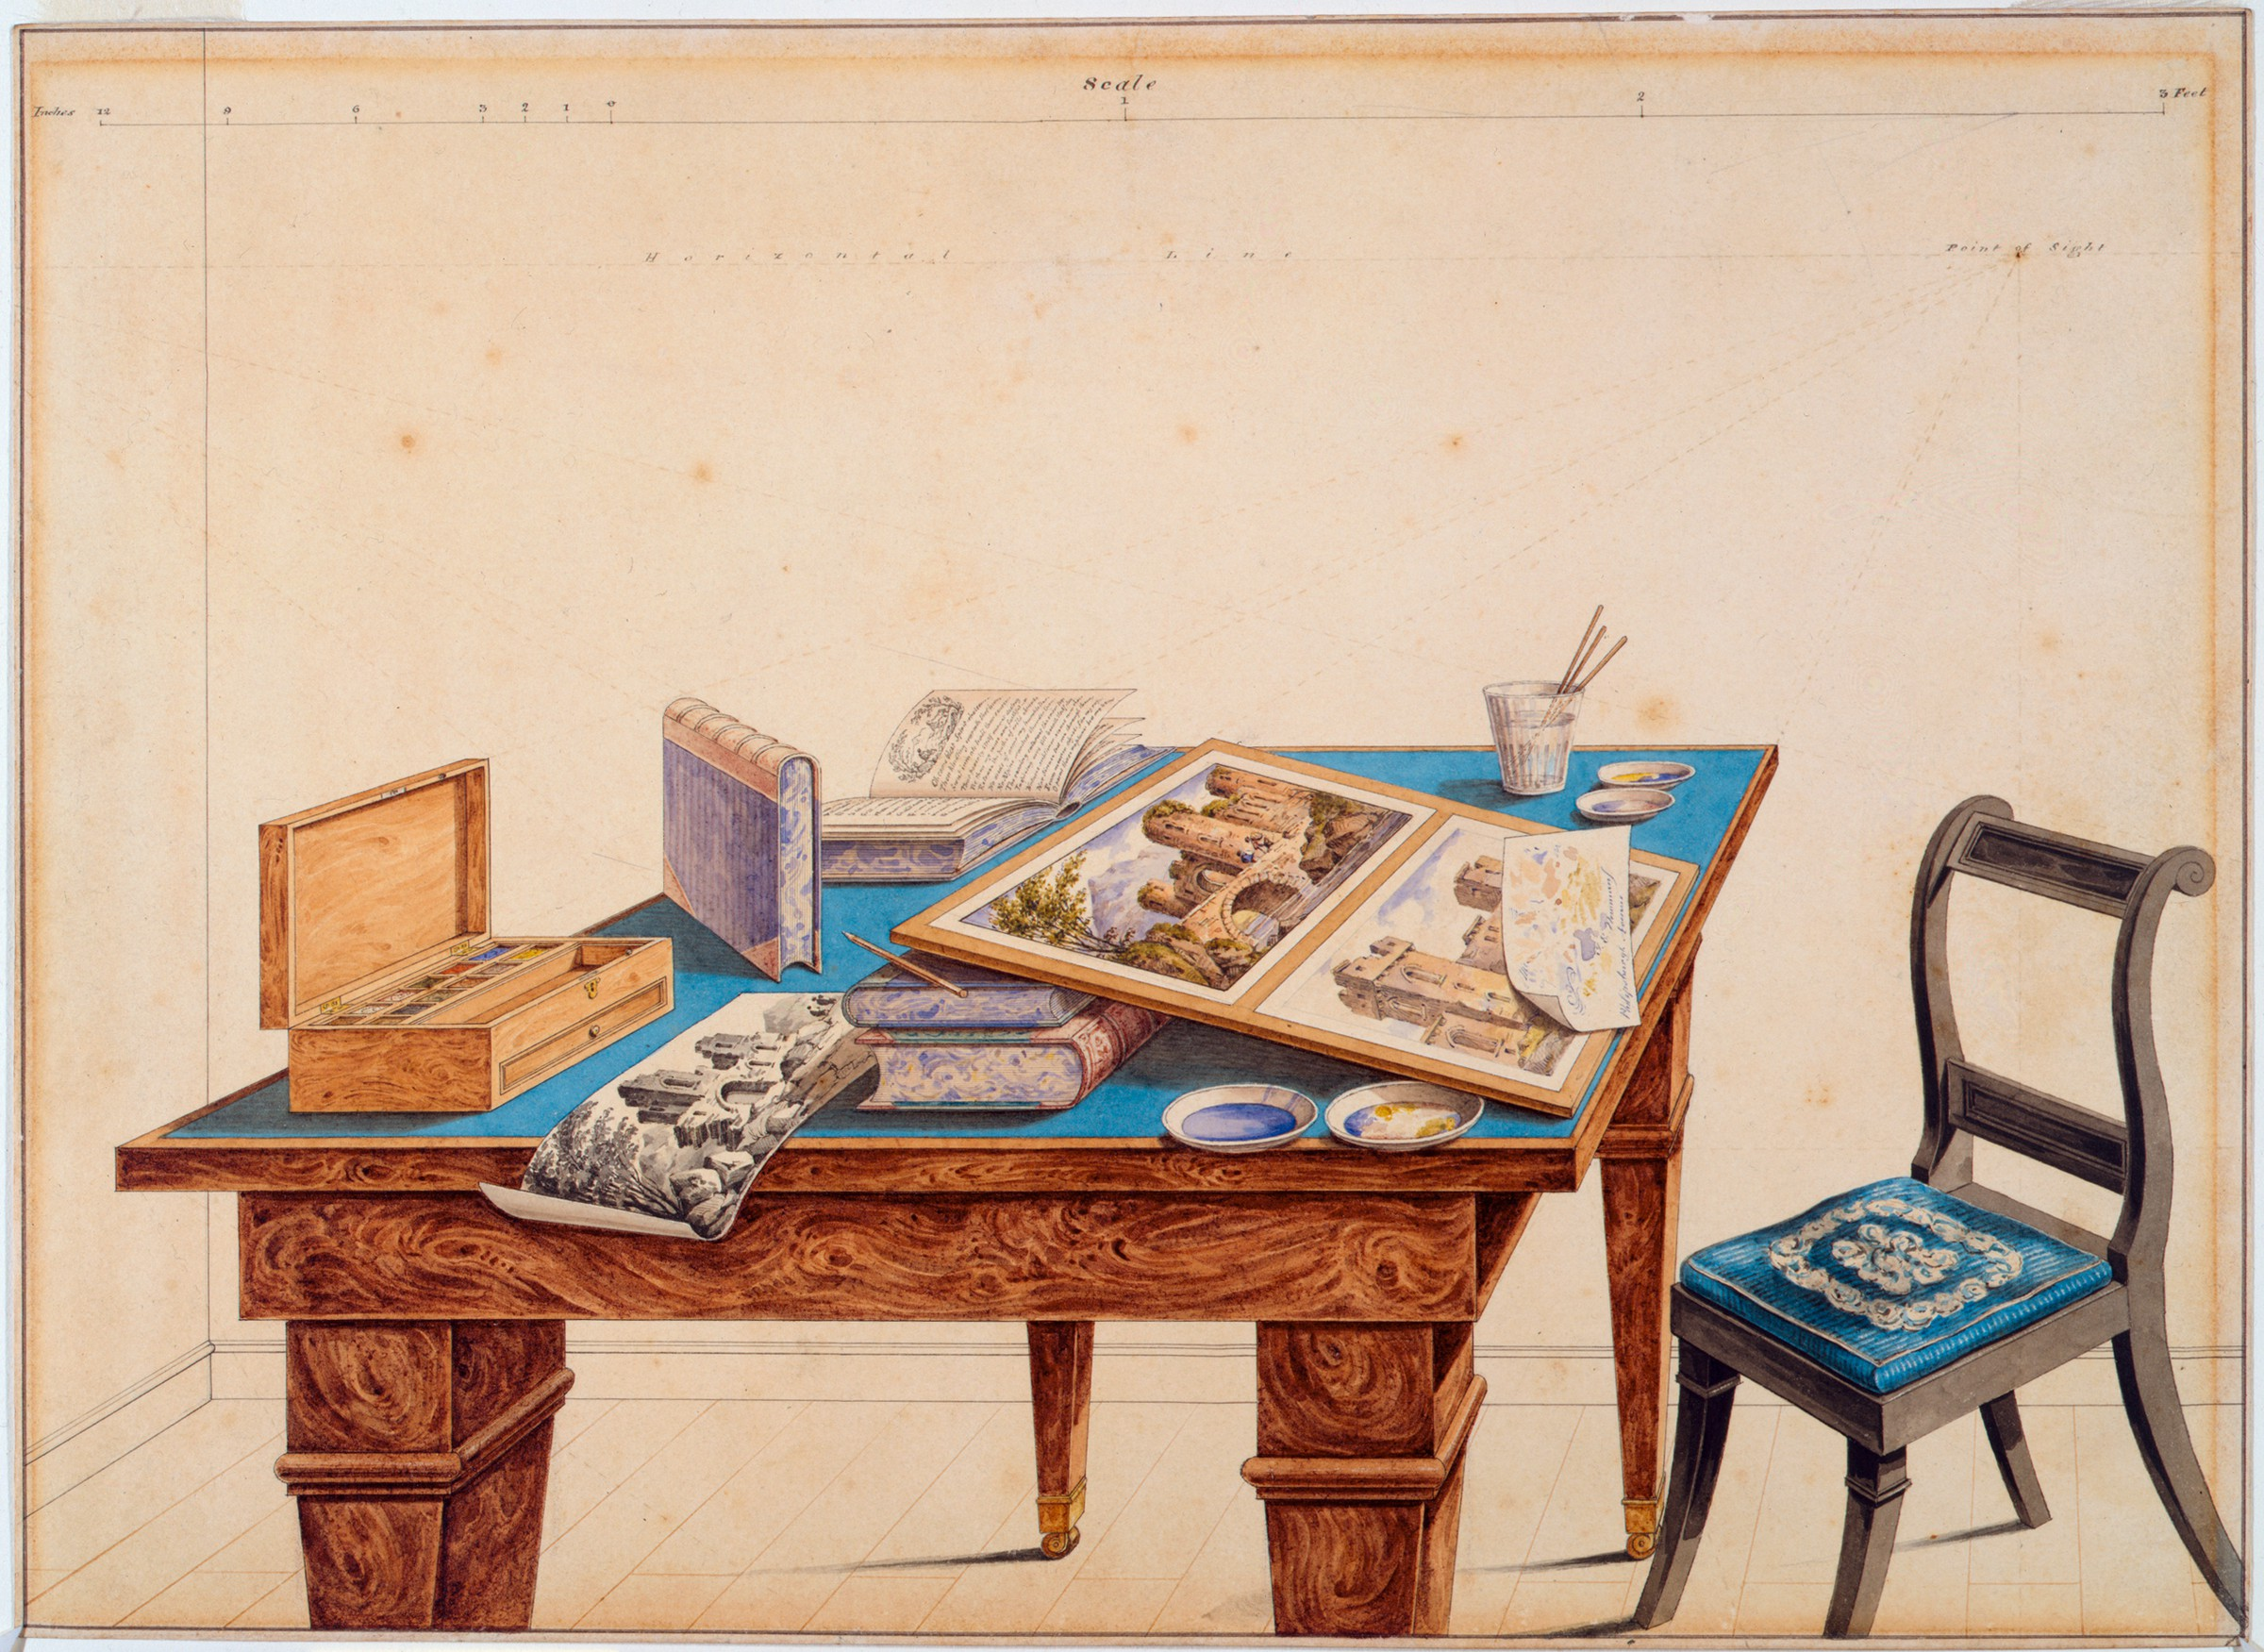 Perspective Rendering of Artist's Table (detail)